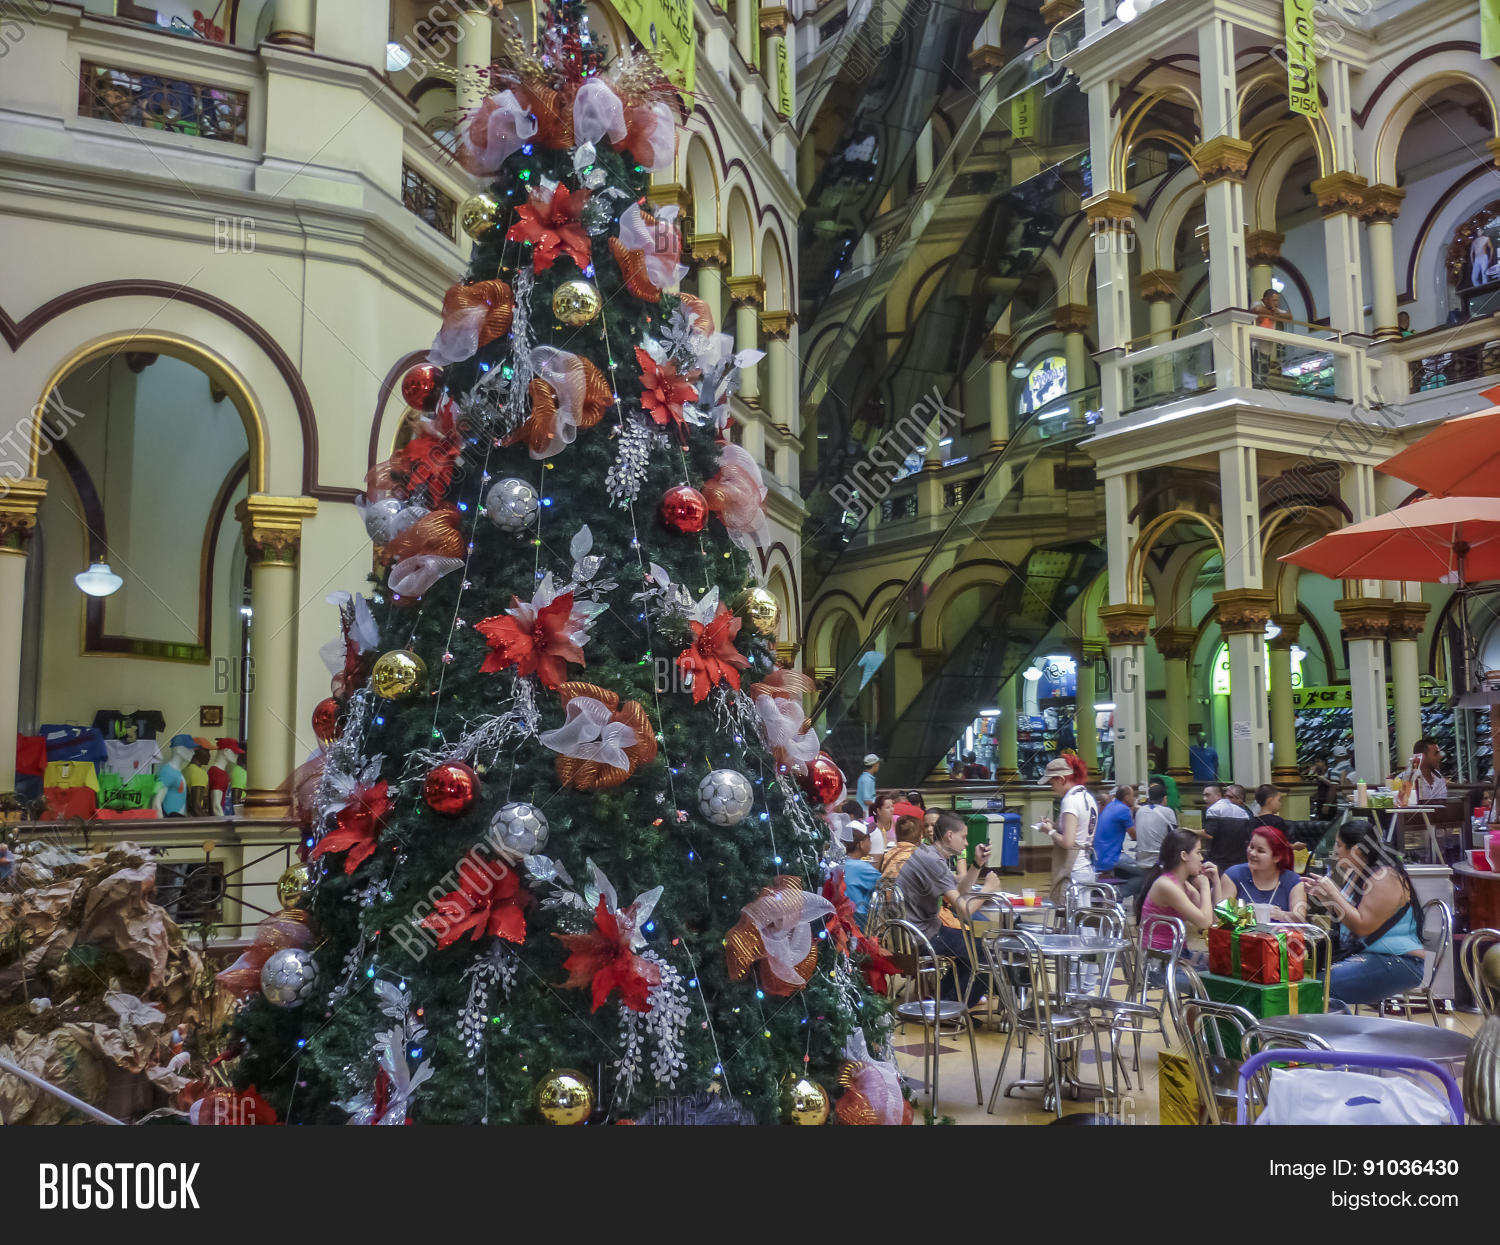 Christmas In Colombia South America.Medellin Shopping Mall Image Photo Free Trial Bigstock